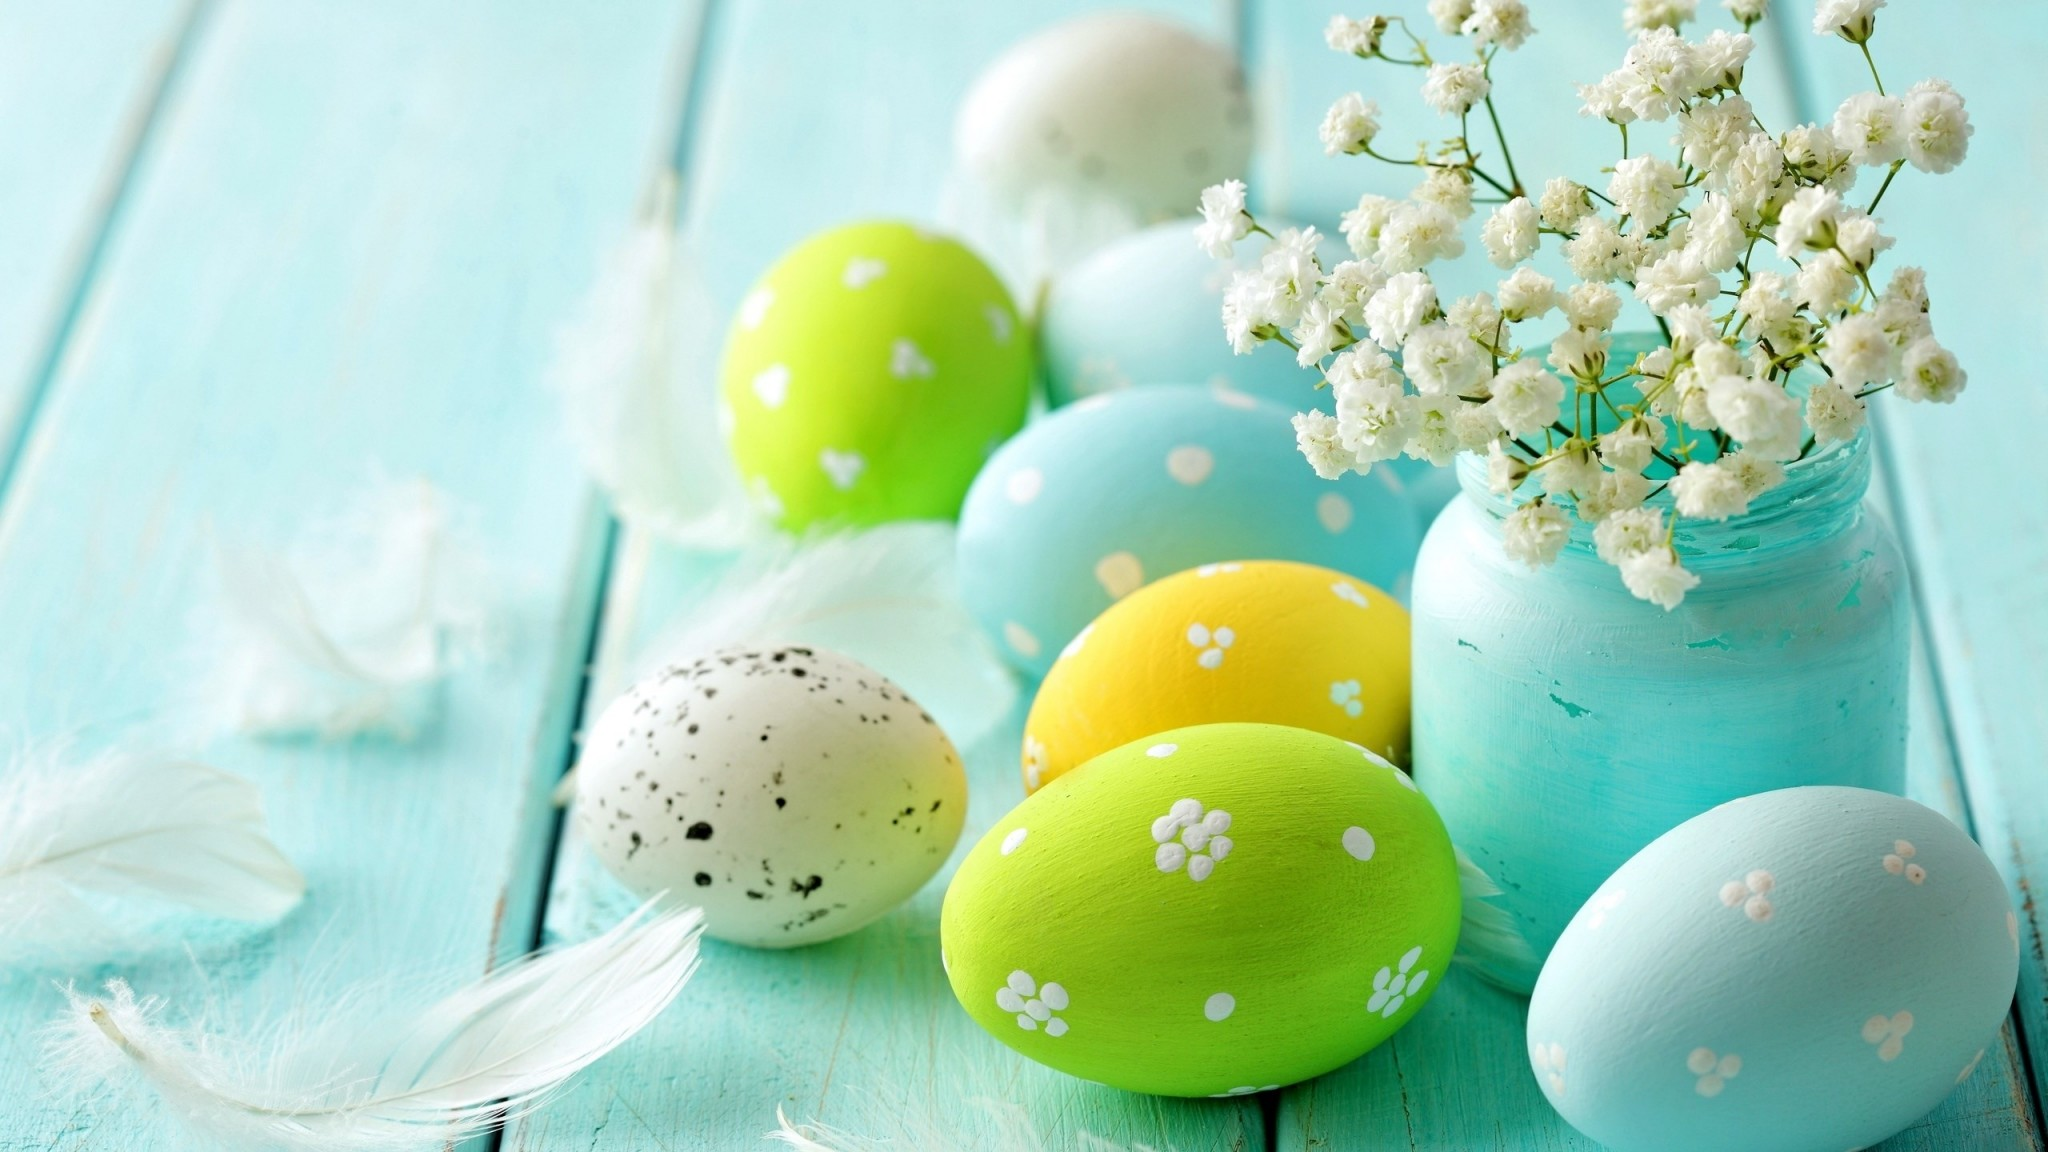 Easter Wallpapers for Desktop 64 images 2048x1152